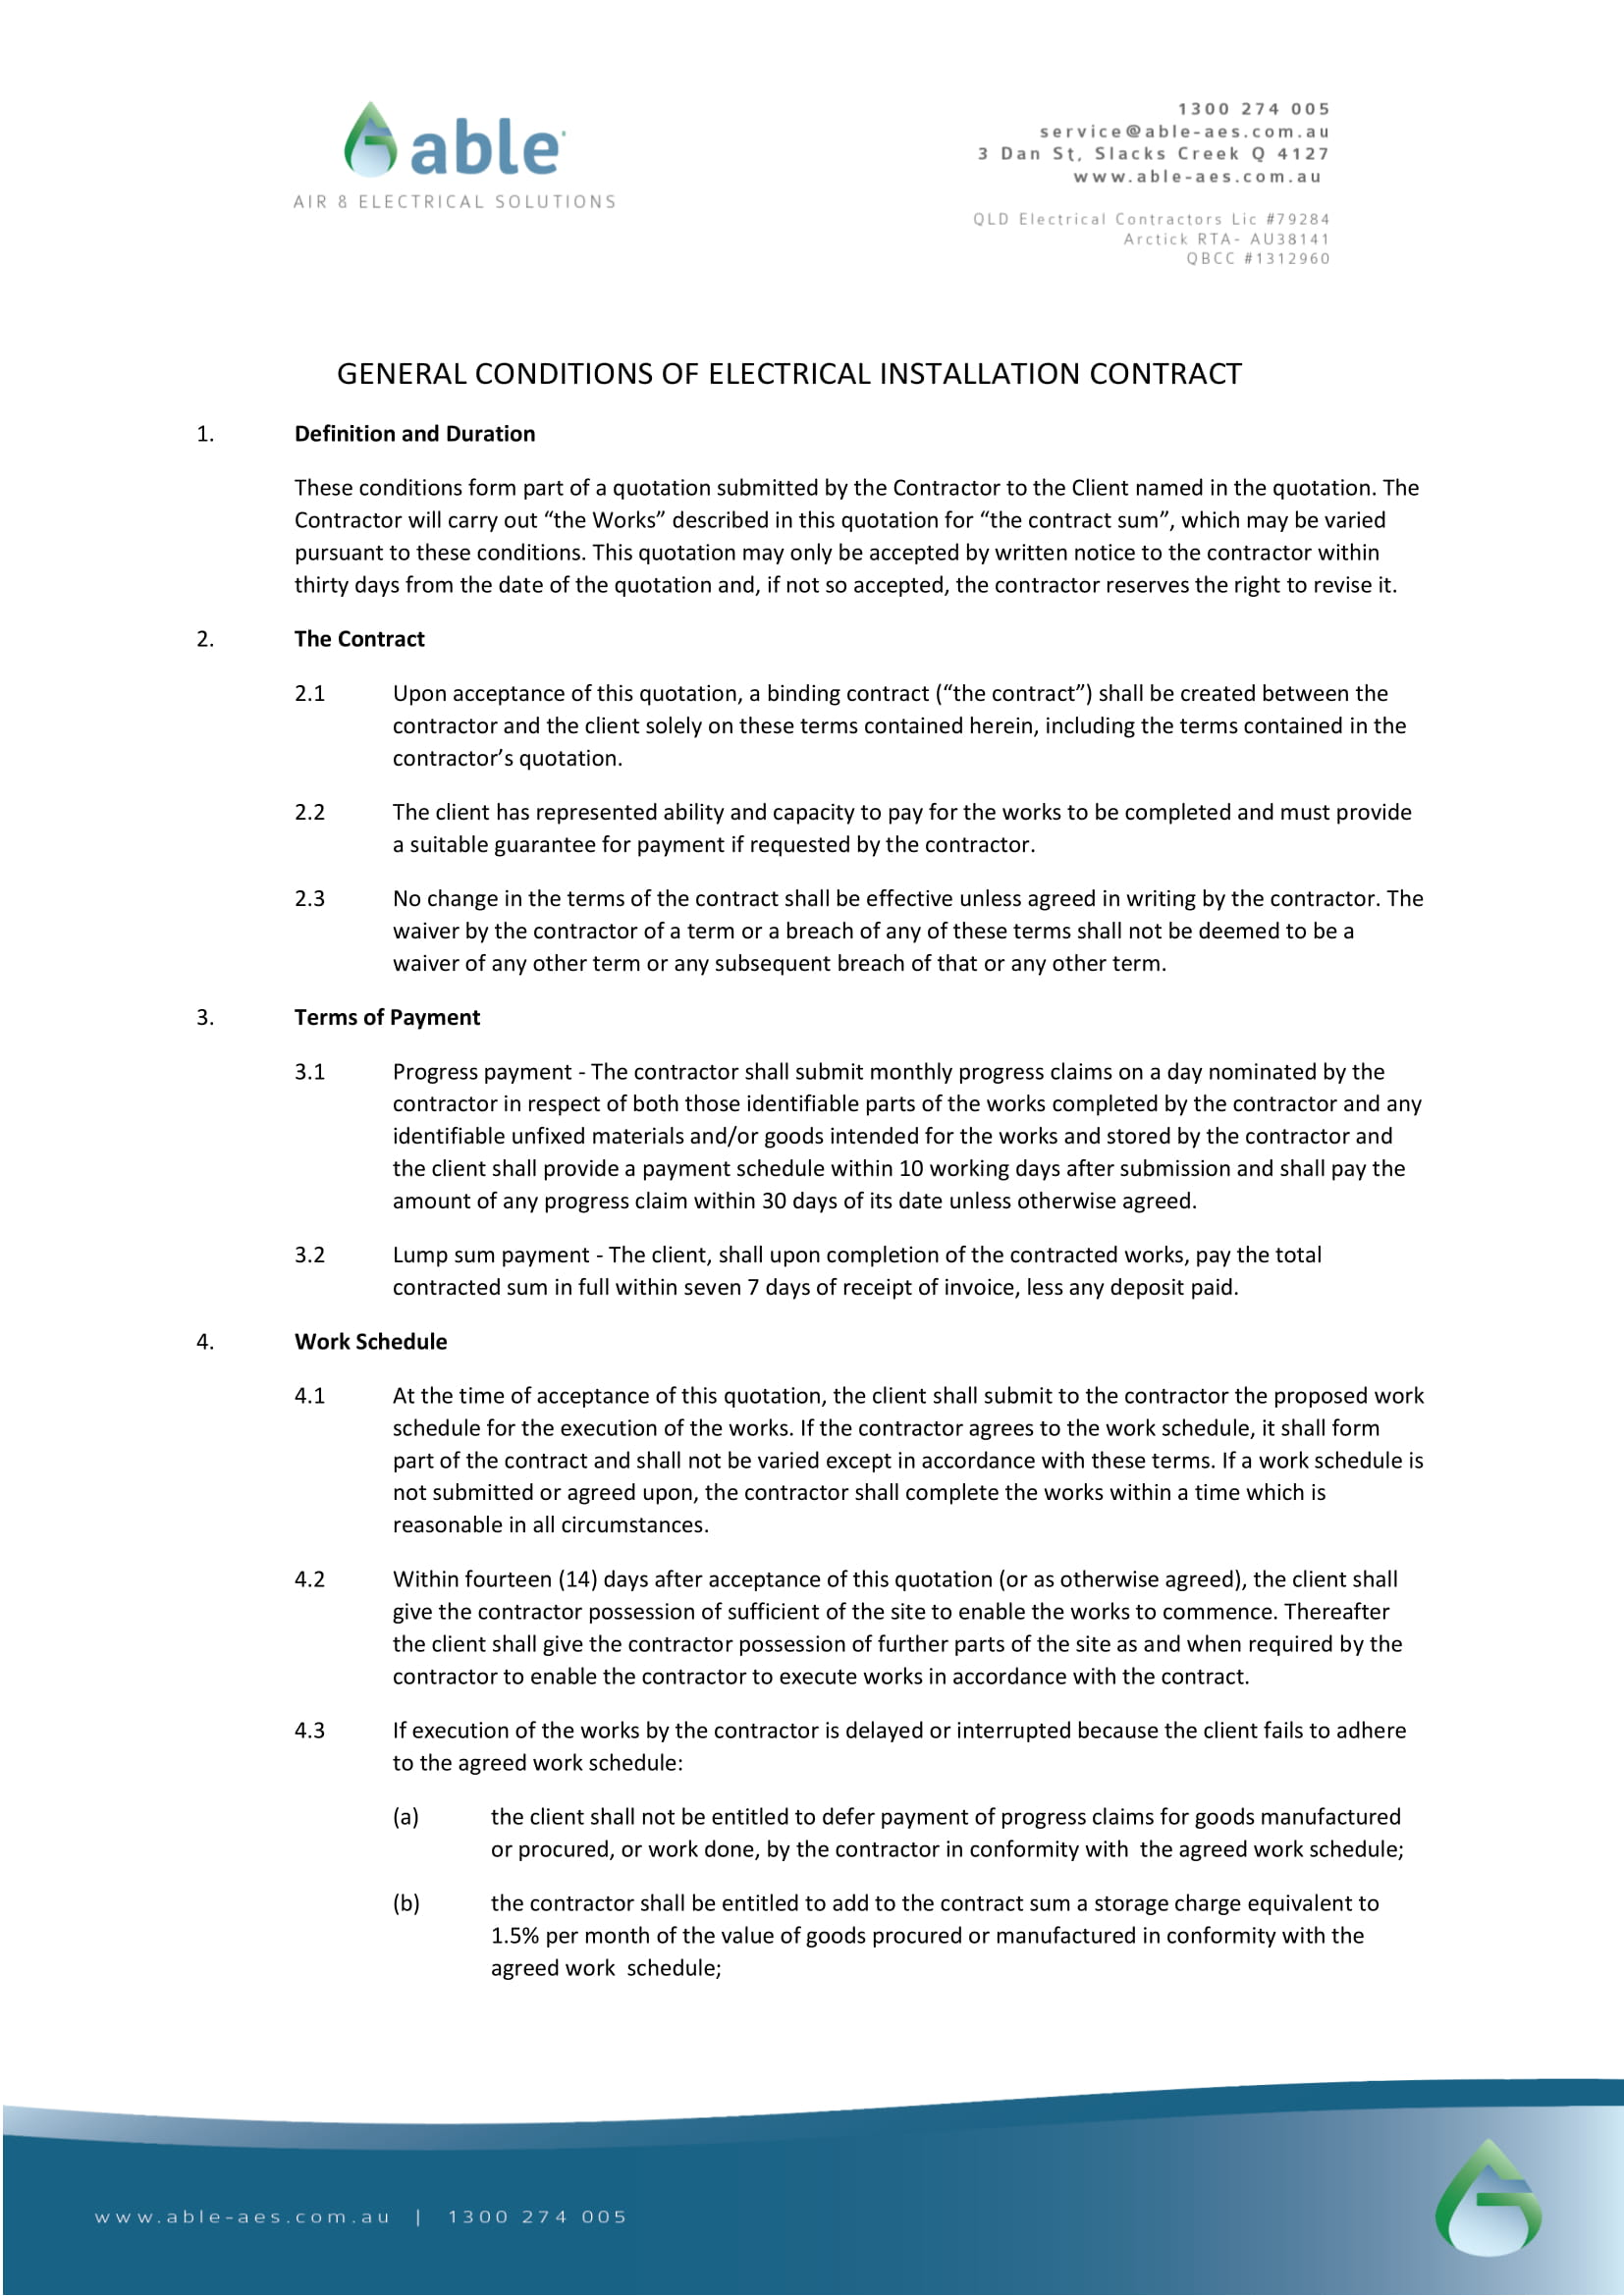 general conditions of electrical installation contract template example 1